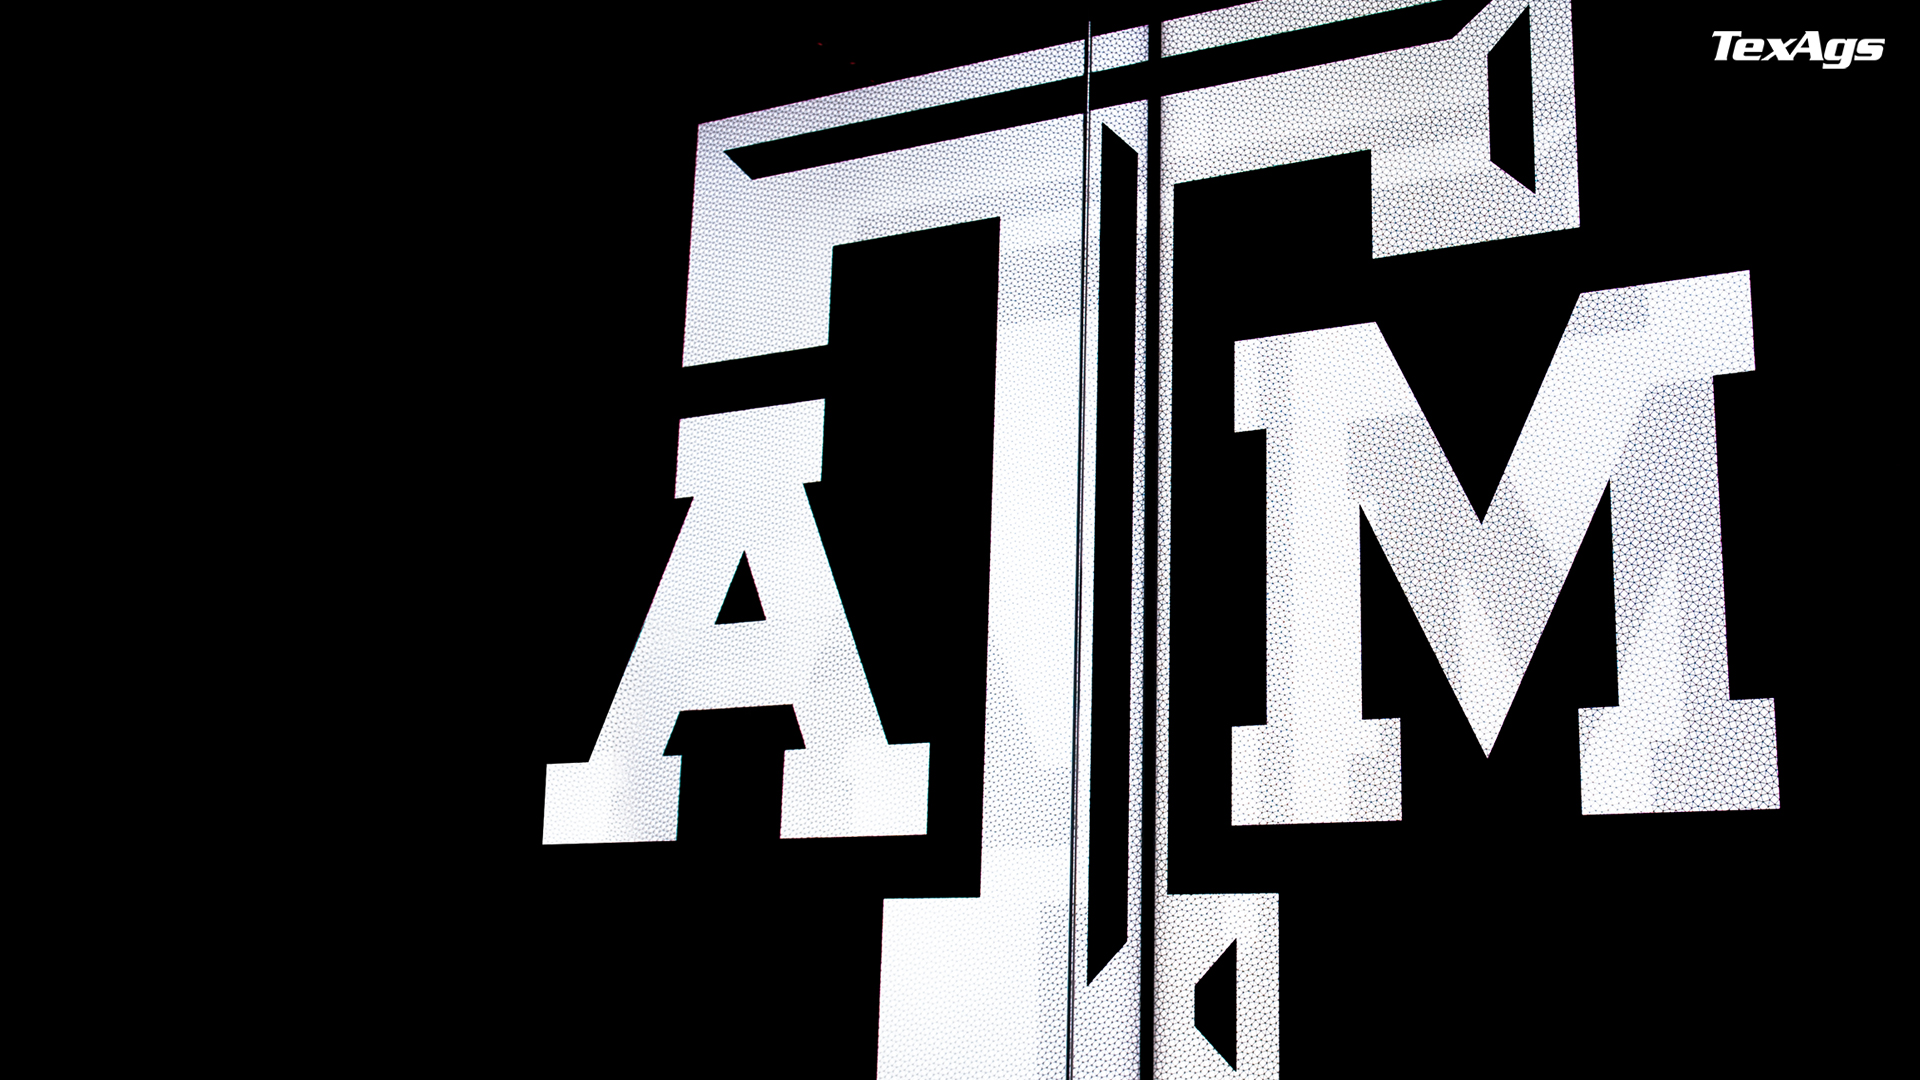 Texas A&Amp;M Wallpapers